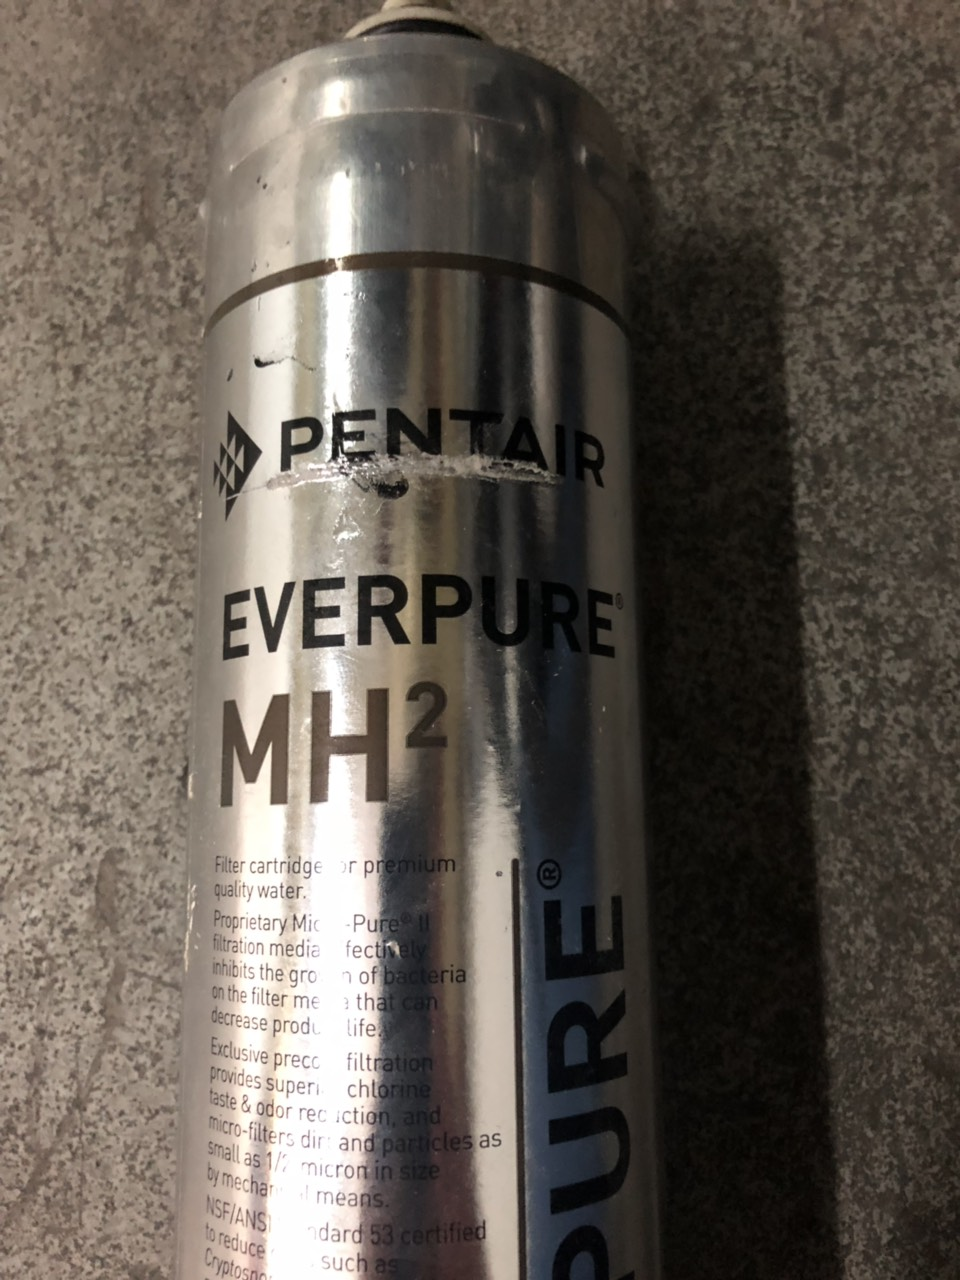 Lõi Lọc EVERPURE MH2 Pentair